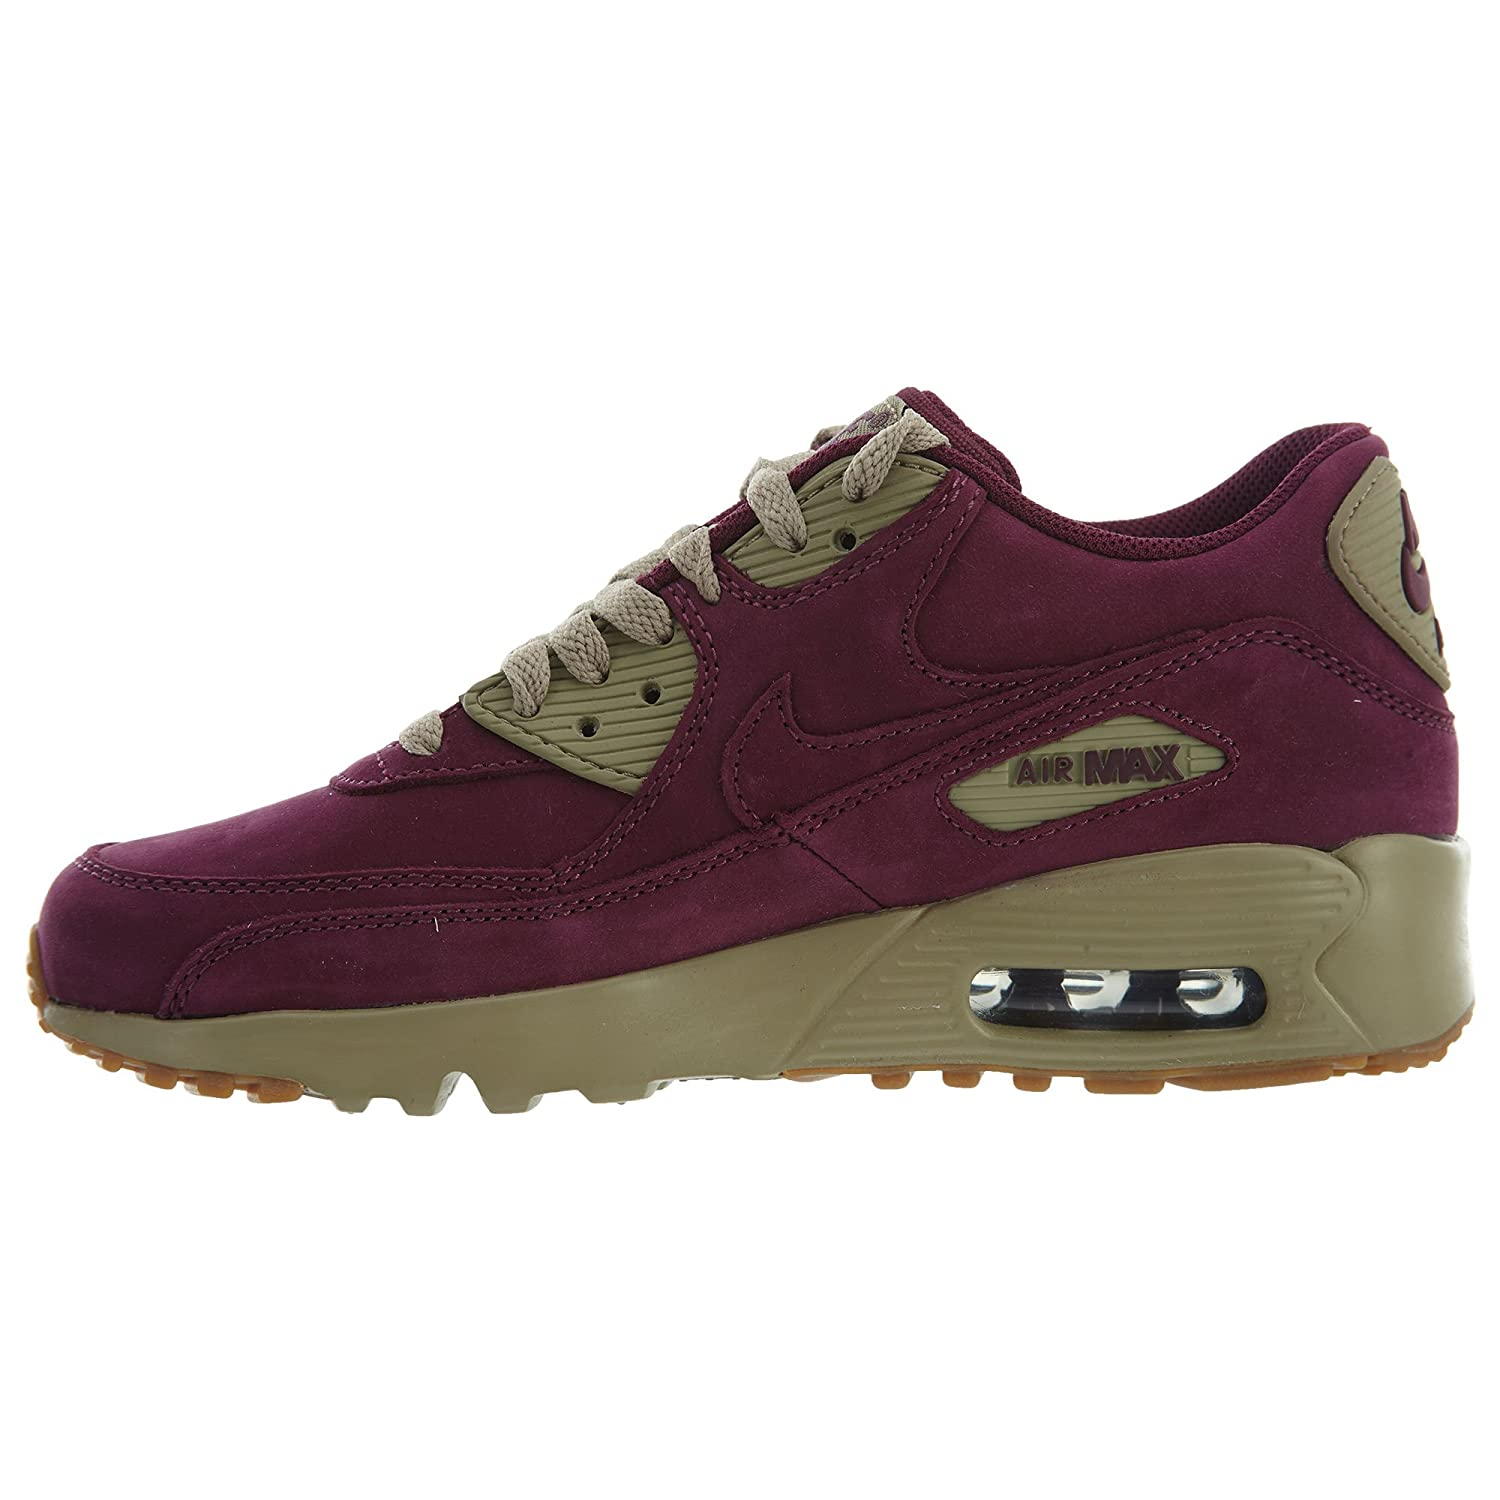 Nike itScarpe E Max Borse PrmgsAmazon Air Winter 90 CxBrtdshQ